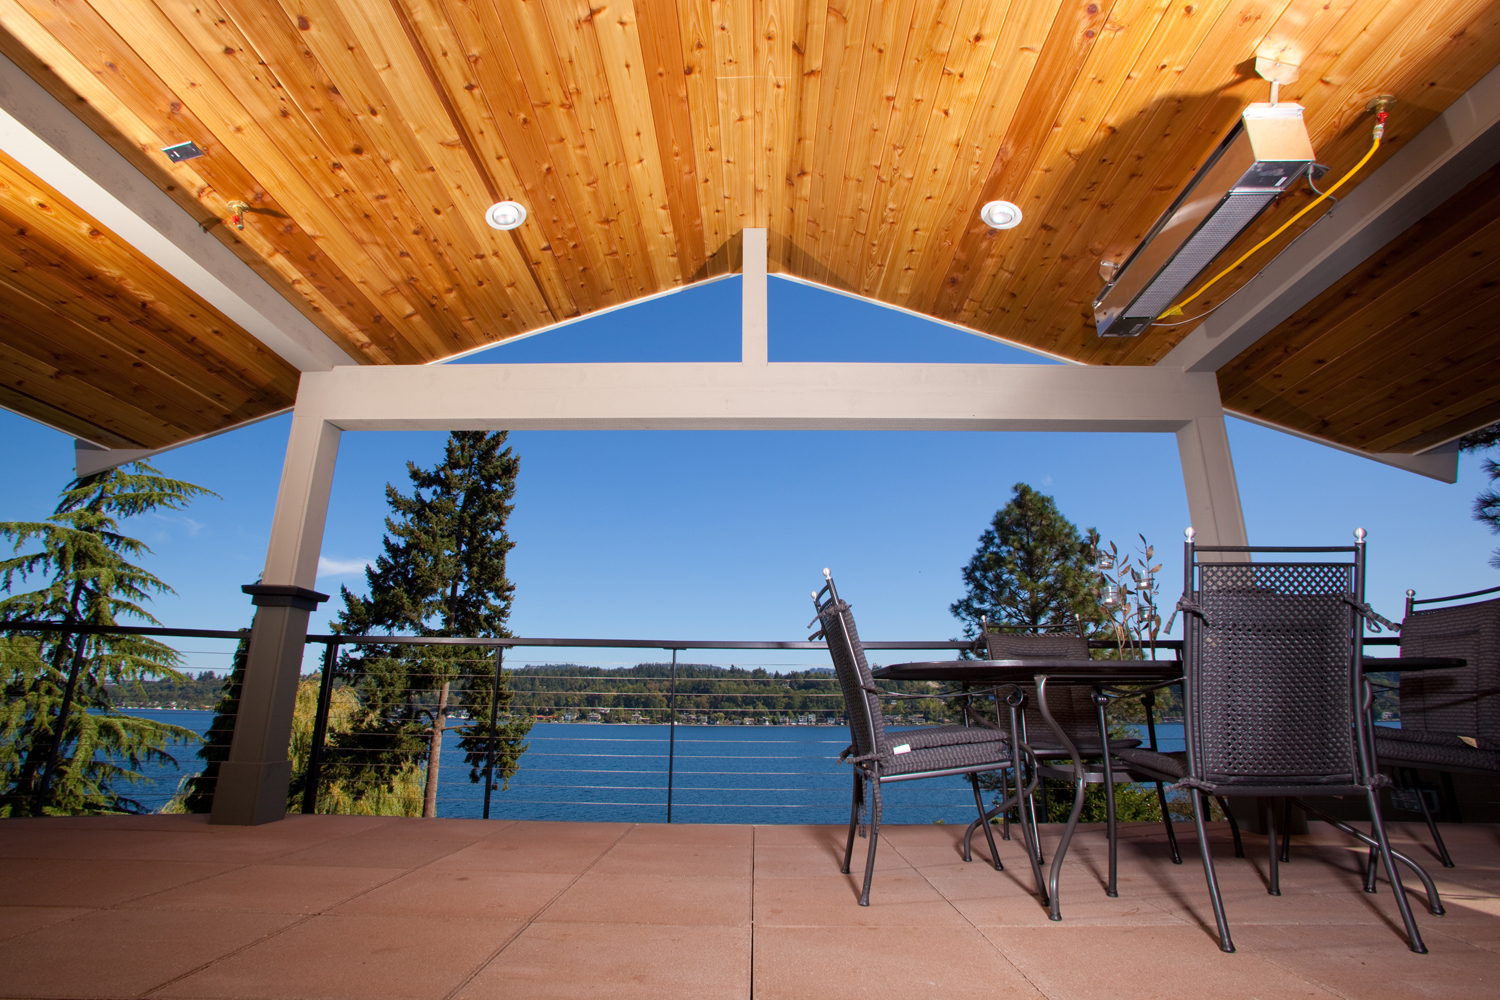 Interior Design For Home Ideas Outdoor Deck Heaters pertaining to dimensions 1500 X 1000